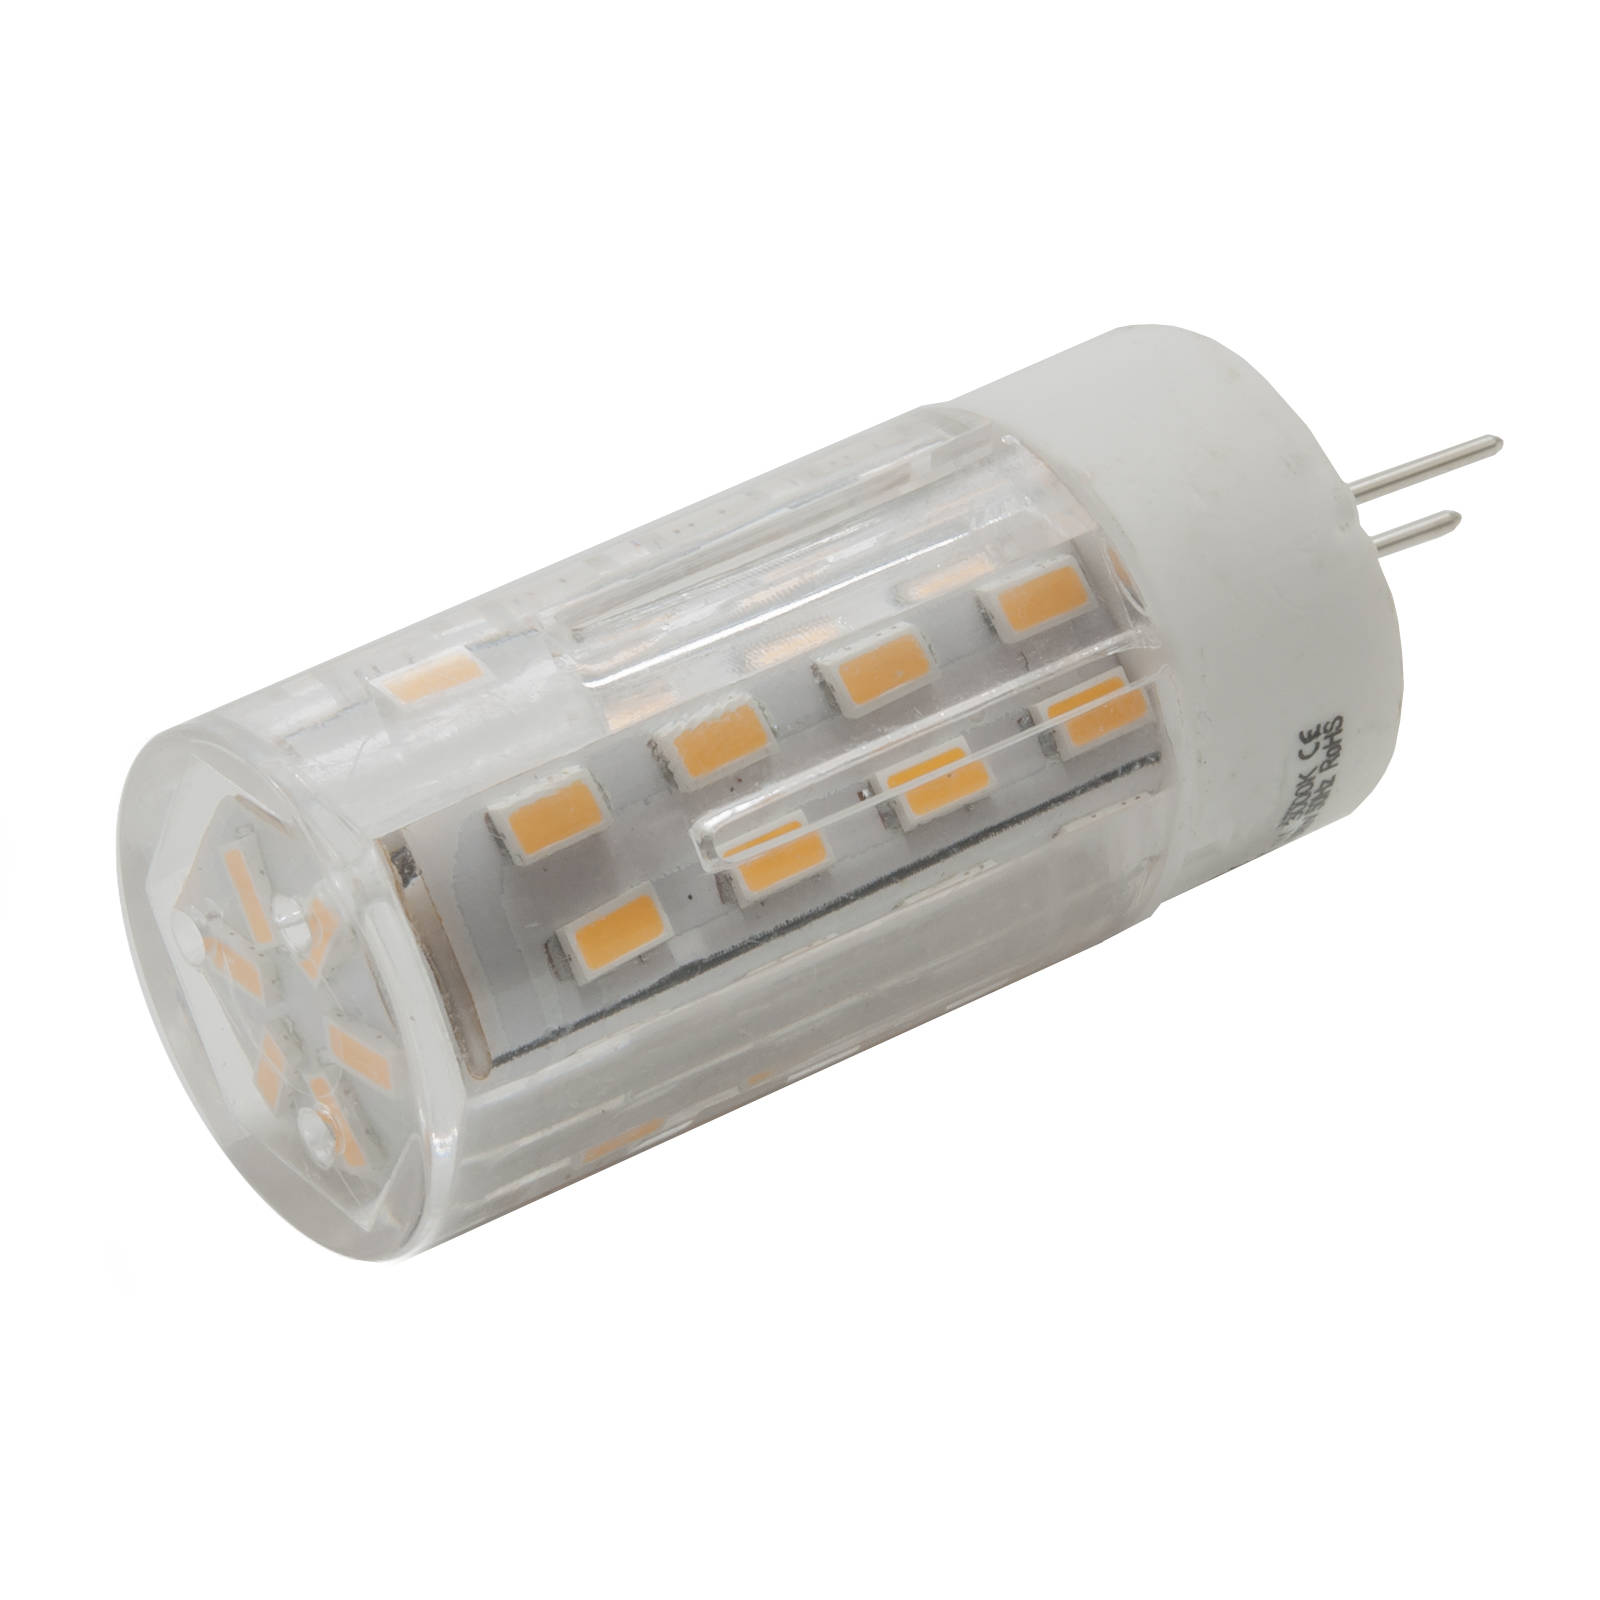 LED lamp from attack G4 5W yield 45W warm light 3000k bulb low consumption 230V